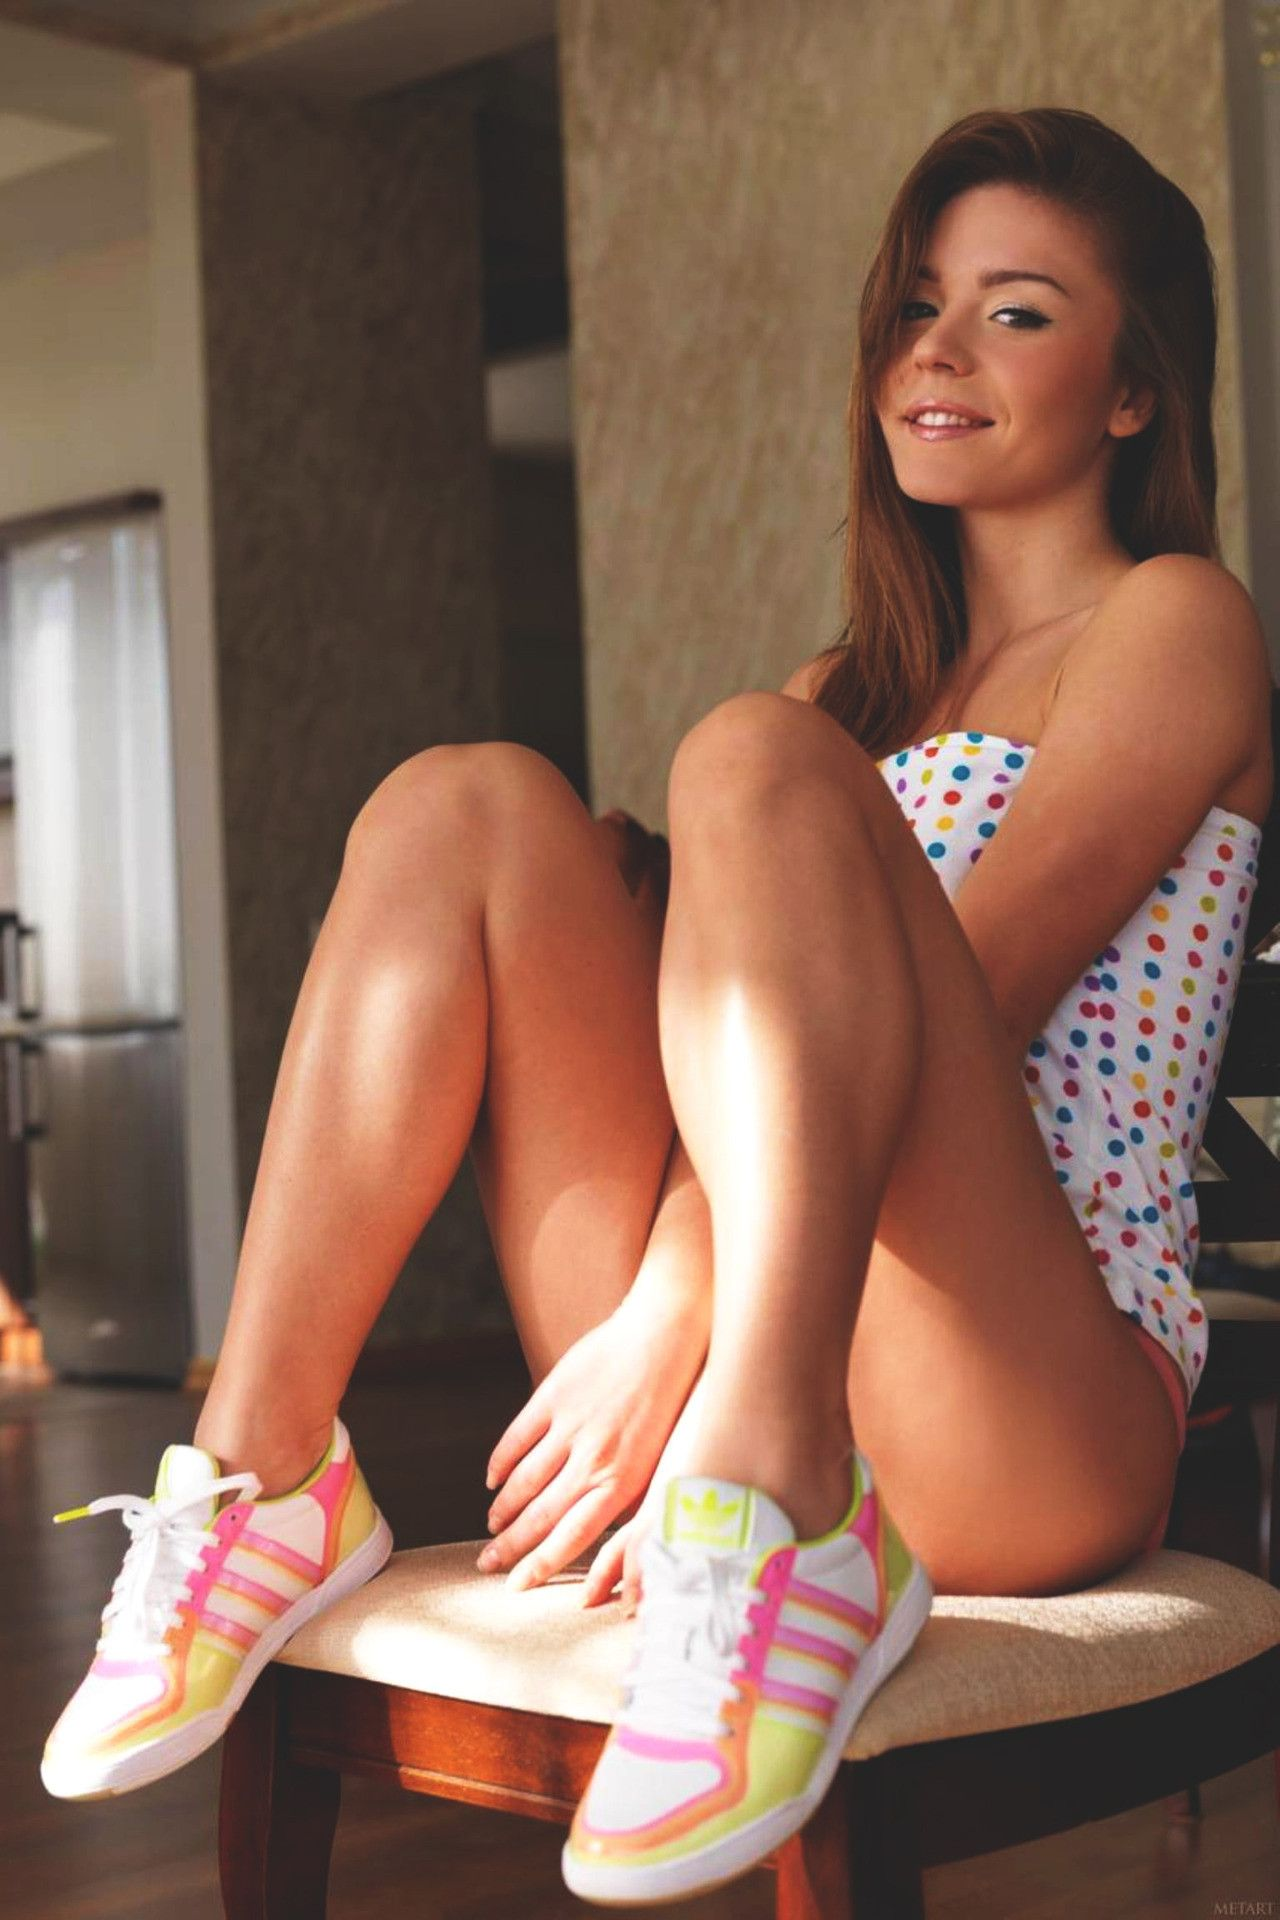 Cute Teens vthebox : fridaxteens: blog more cute teens dresses,girl